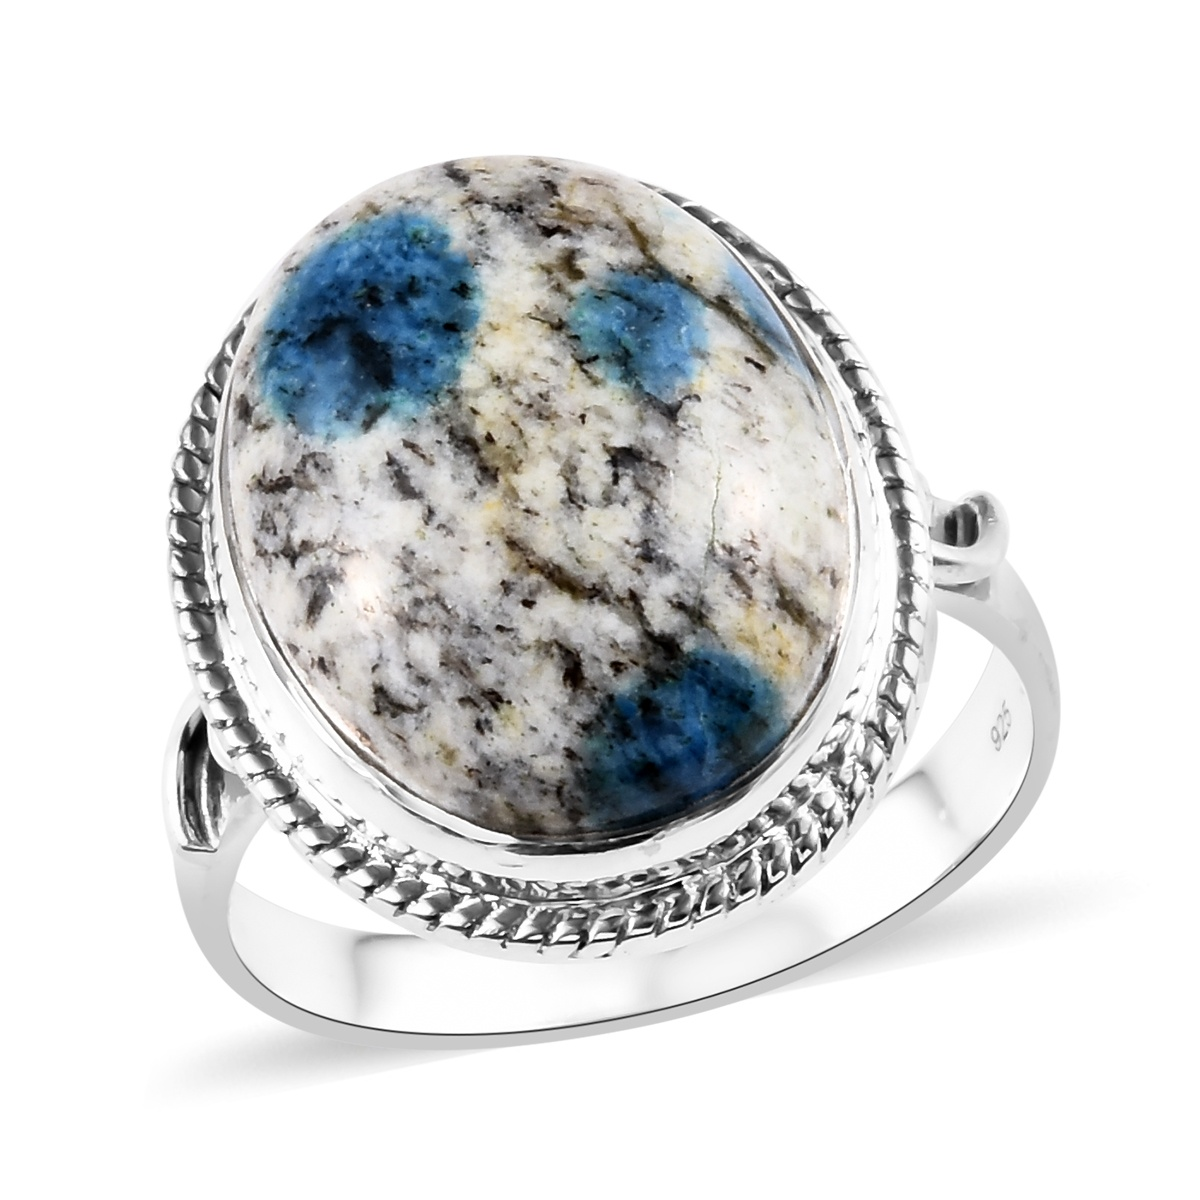 Becky's Host Pick Artisan Crafted K2 Jasper Ring in Sterling Silver (Size 11.0) 17.40 ctw